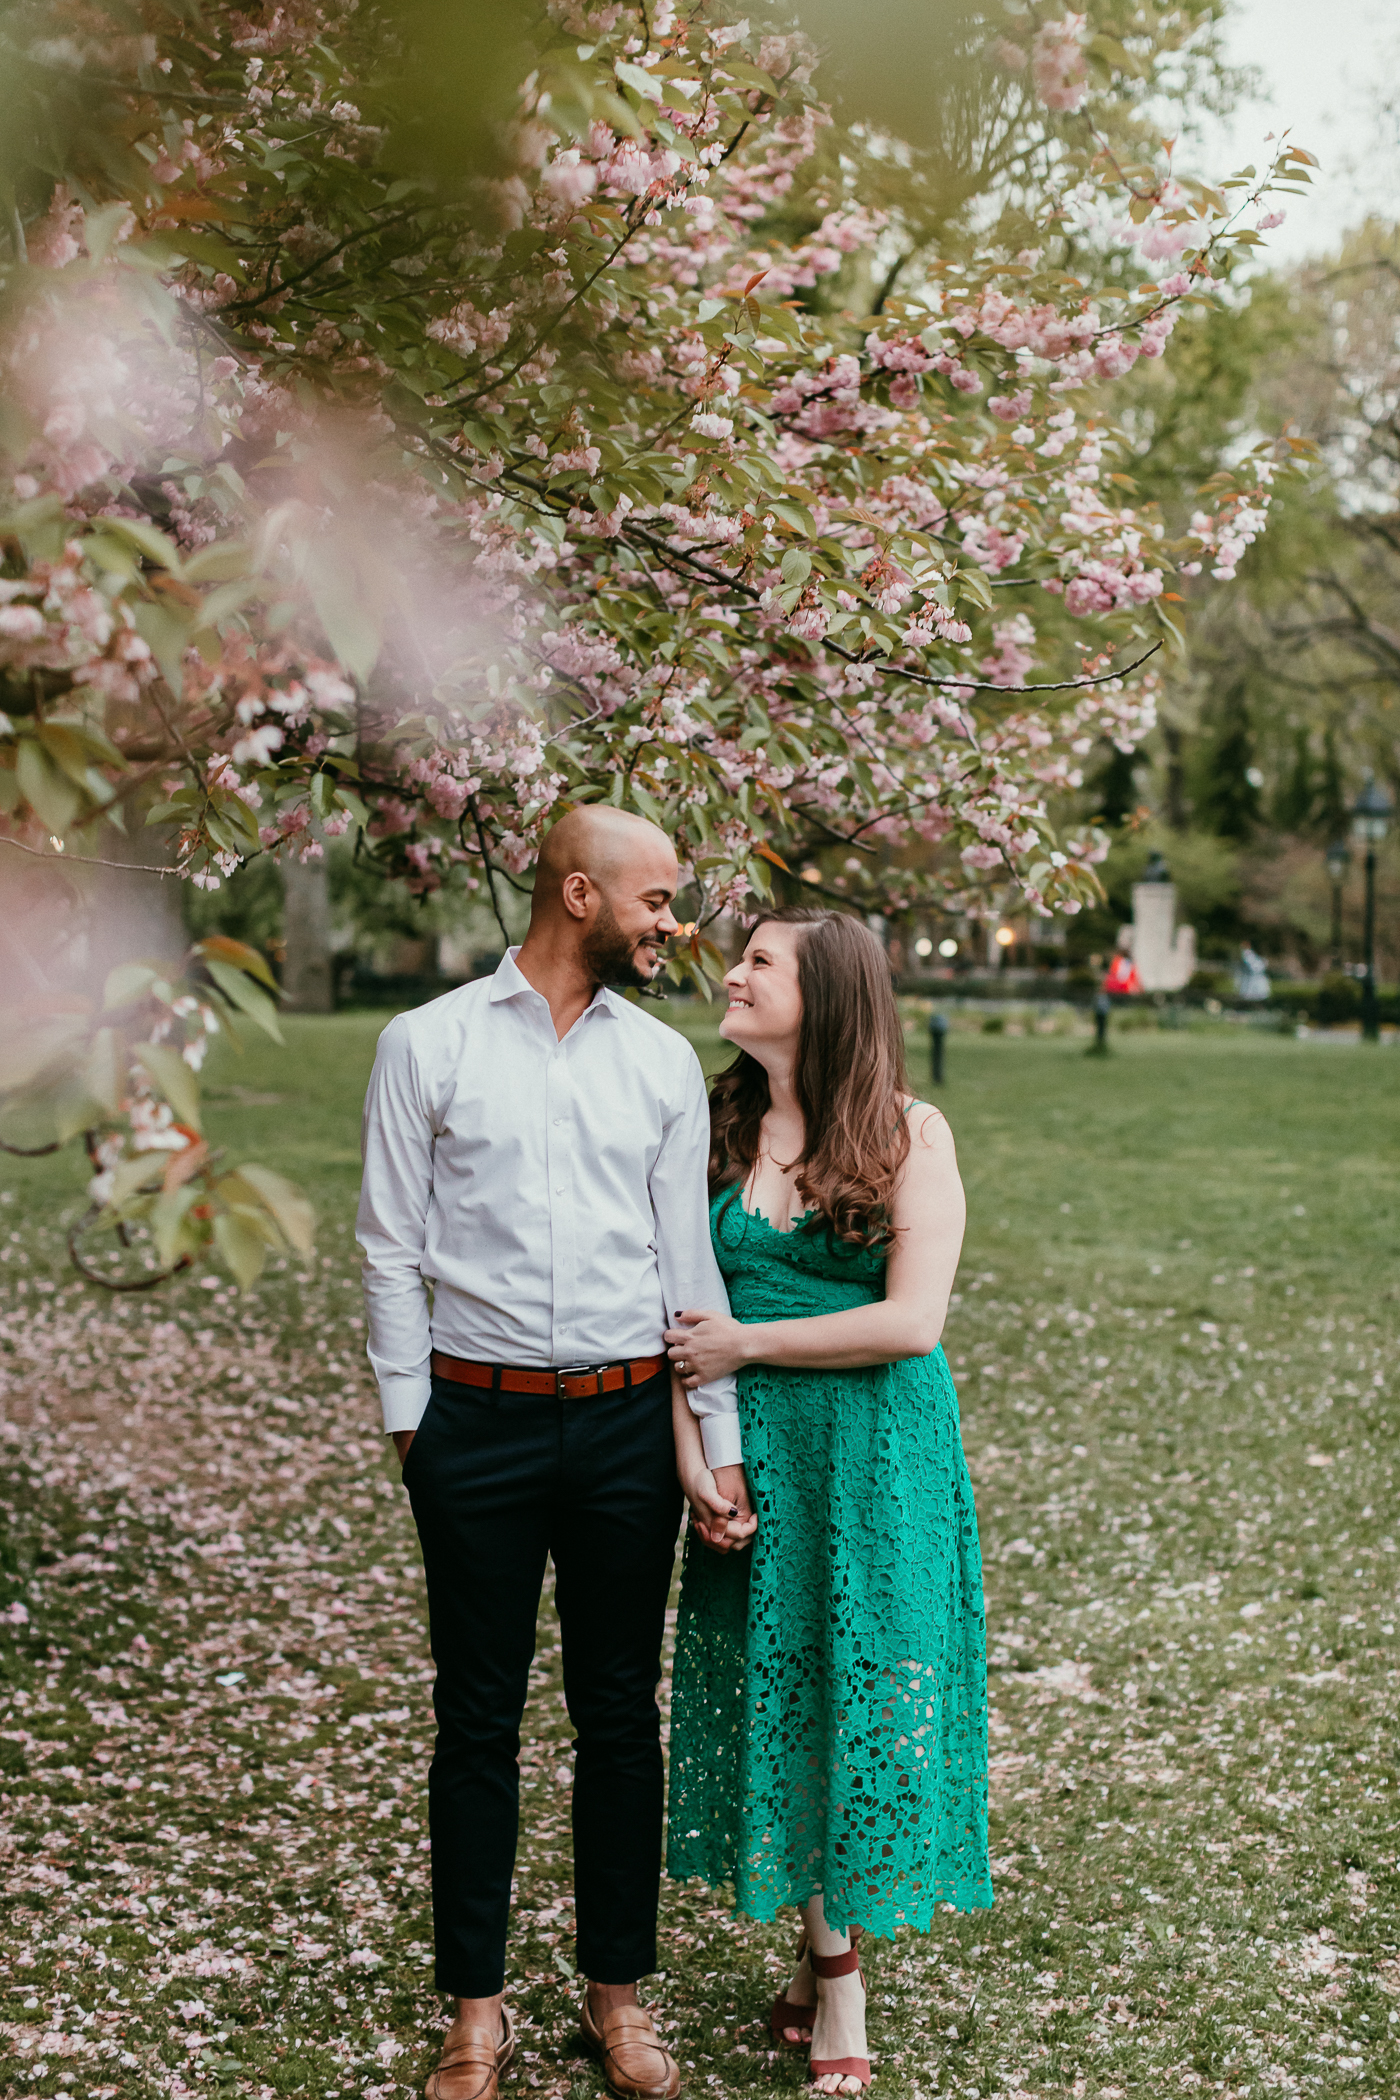 West-Village-Engagement-Photos-NYC-Wedding-Photographer-6.JPG